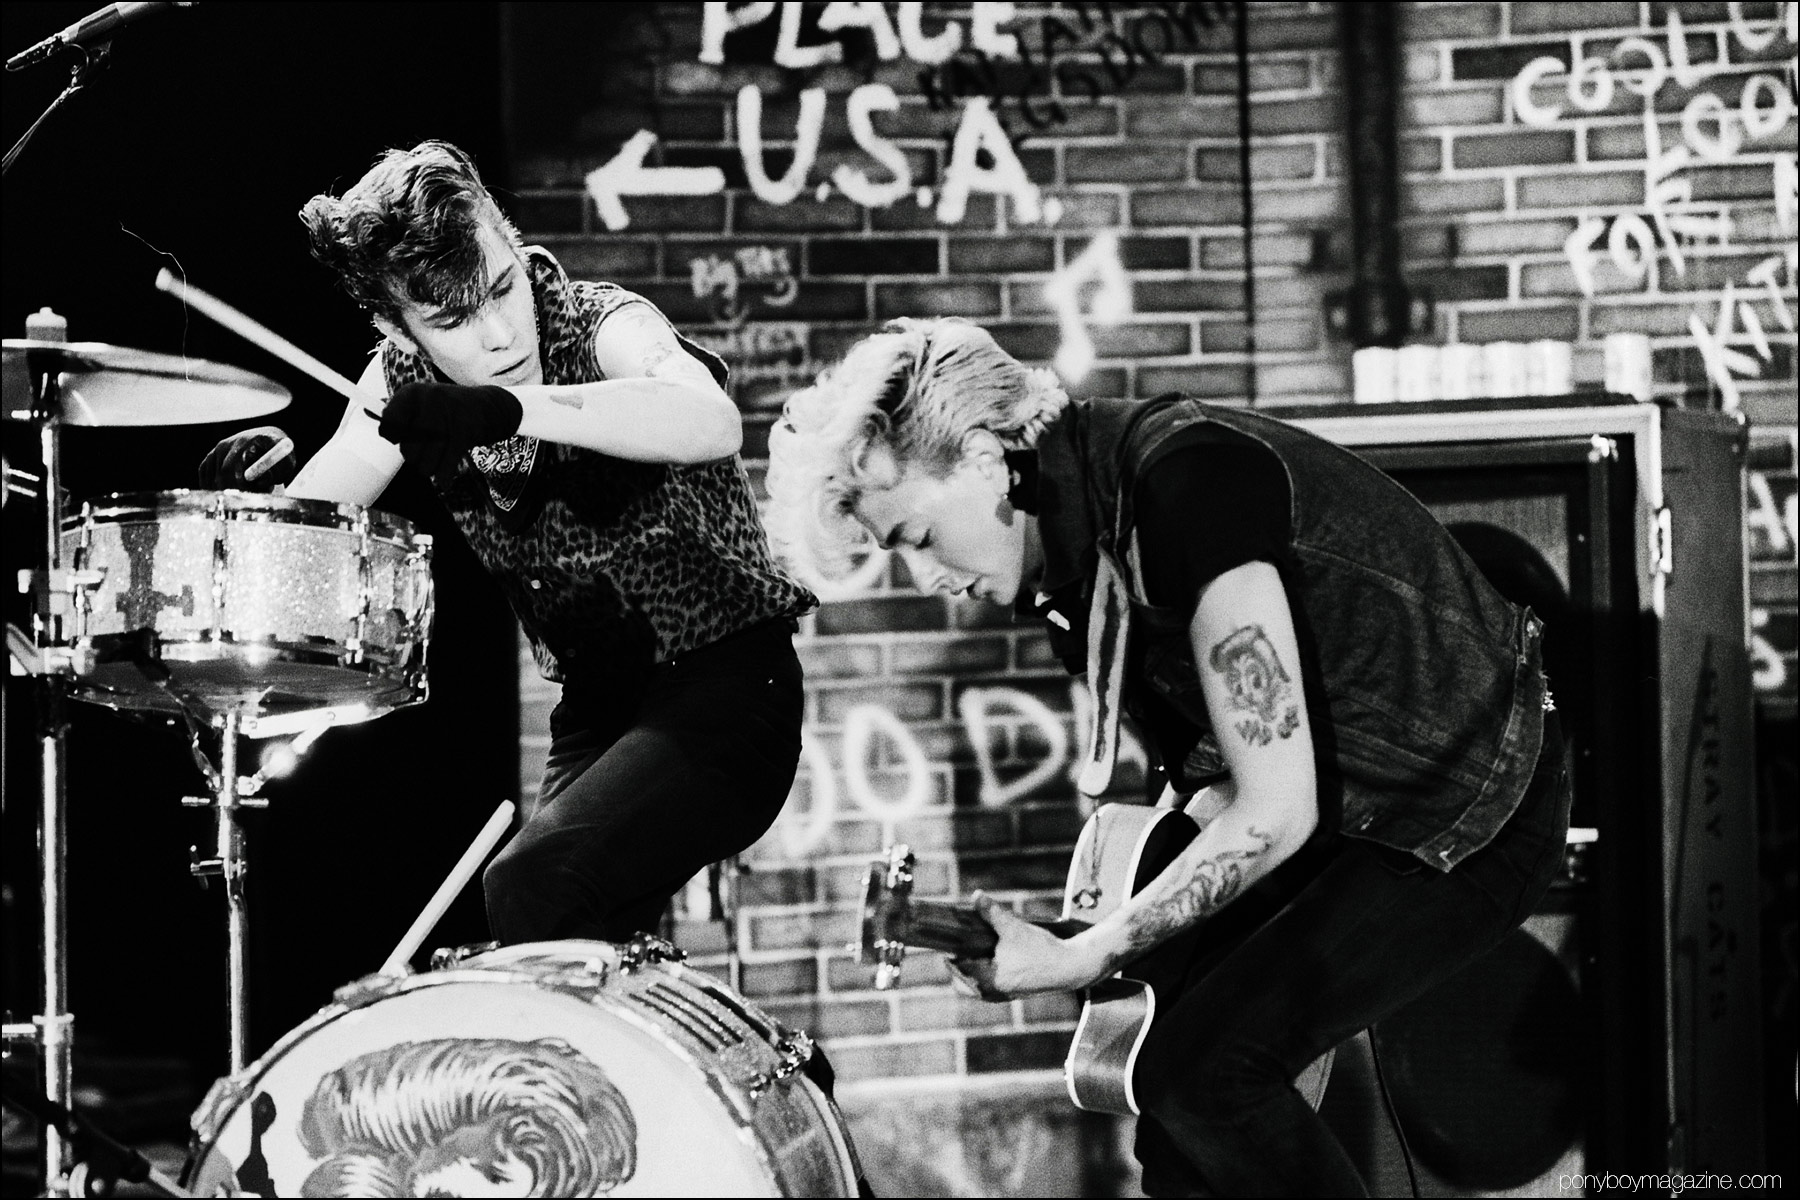 Slim Jim Phantom and Brian Setzer, from 80's rockabilly band Stray Cats, photographed onstage by Manfred Becker. Ponyboy magazine NY.